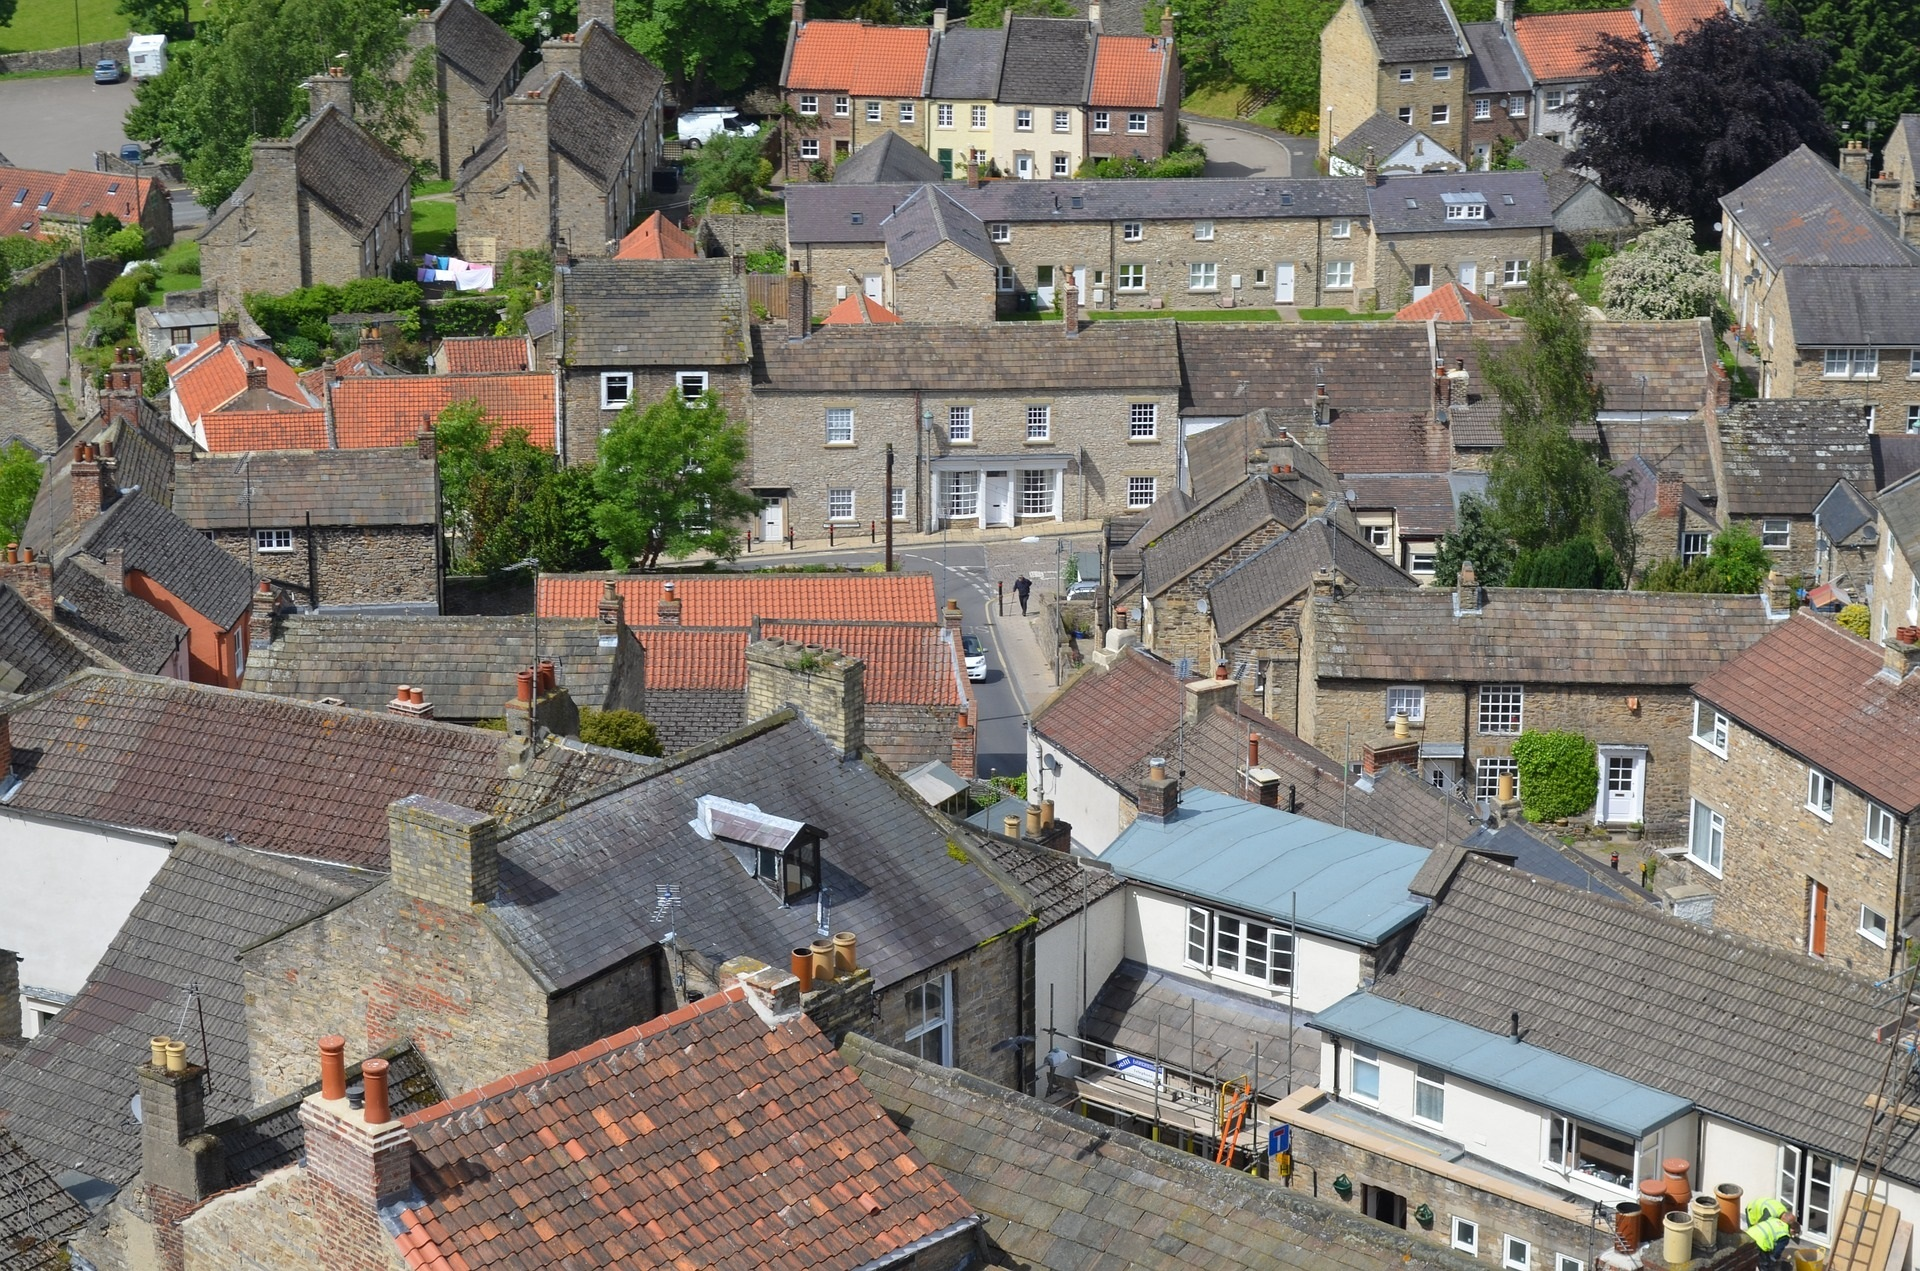 WALKABOUT: Street inspections are taking place in villages and towns including Richmond to identify any issues with streets or housing estates. Picture: PIXABAY